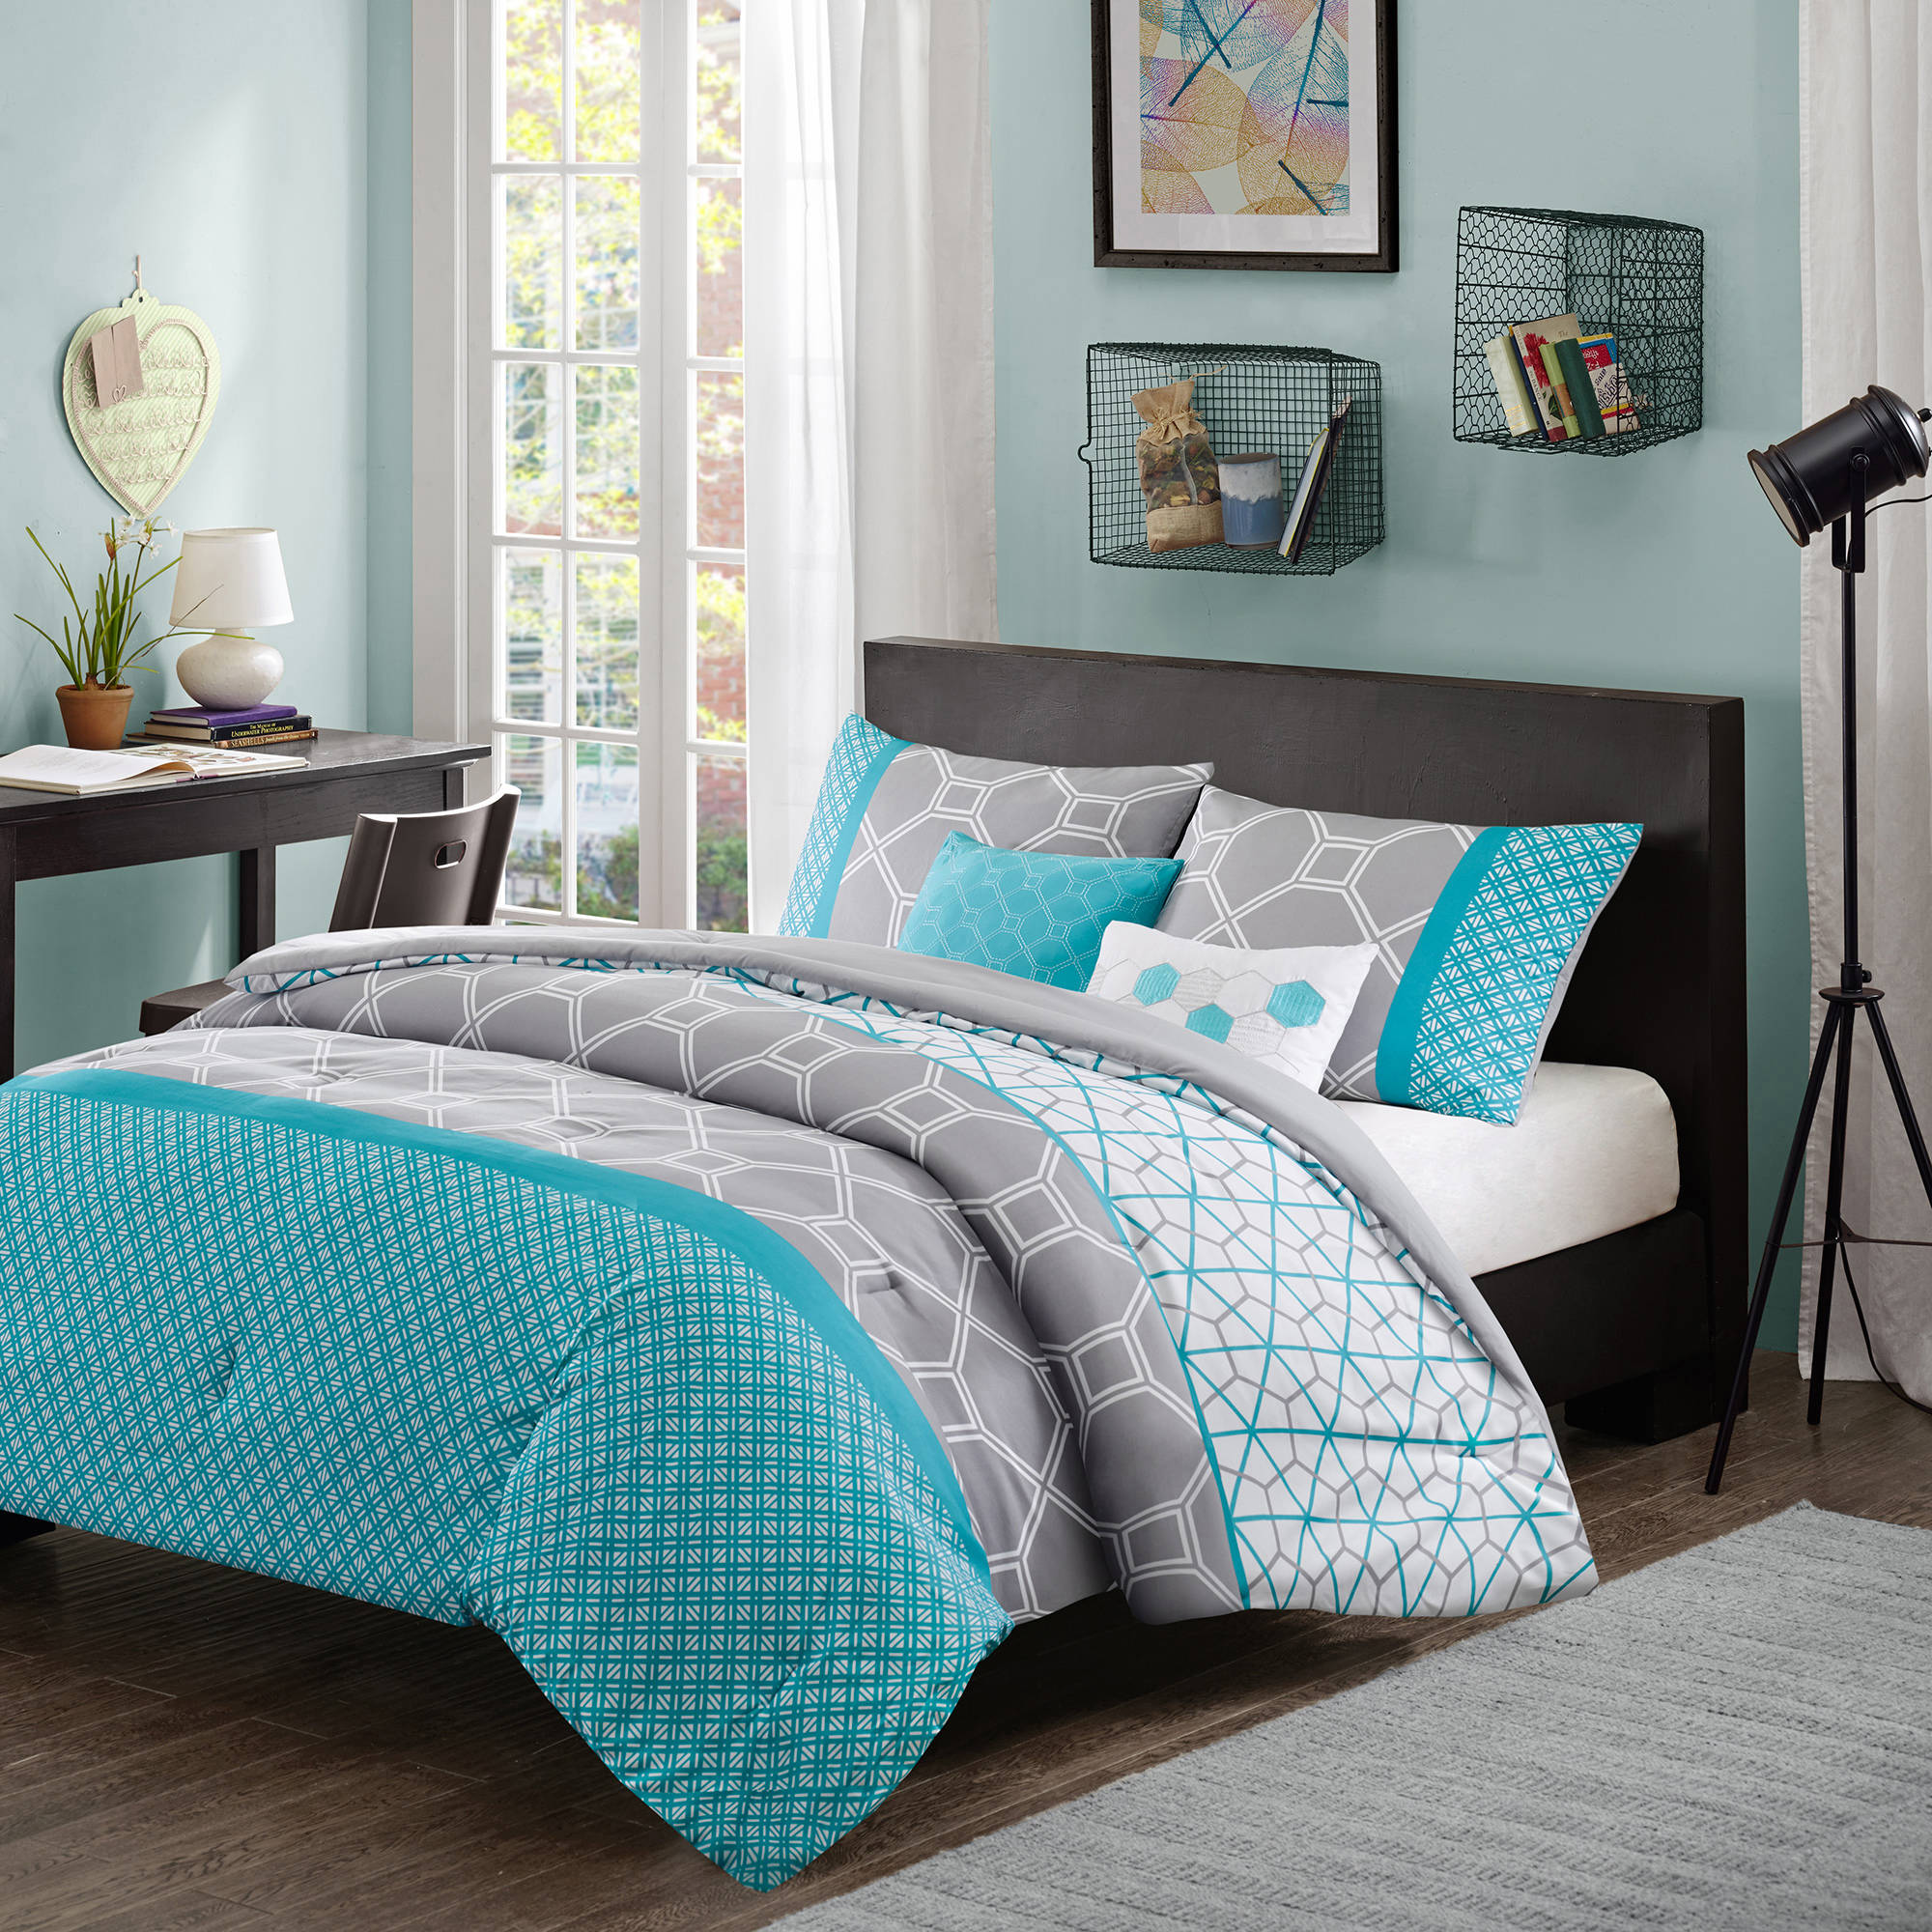 comforter bedroom 5 piece queen bedding aqua blue grey set 11741 | c750e57c110cbcfcc1aabf30a0f1dd30